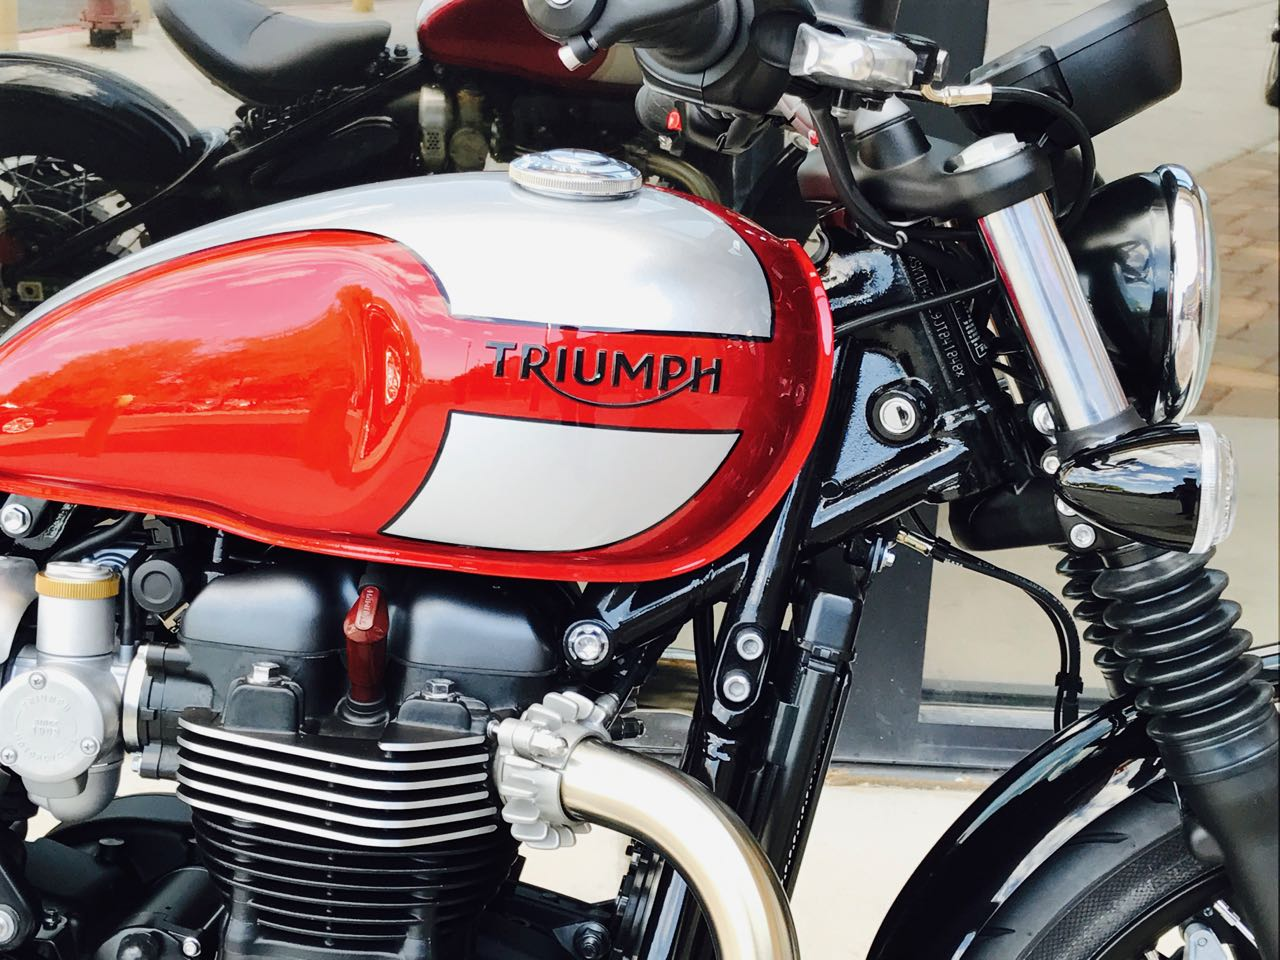 2018 triumph bobber two-tone for sale in las vegas, nv. freedom